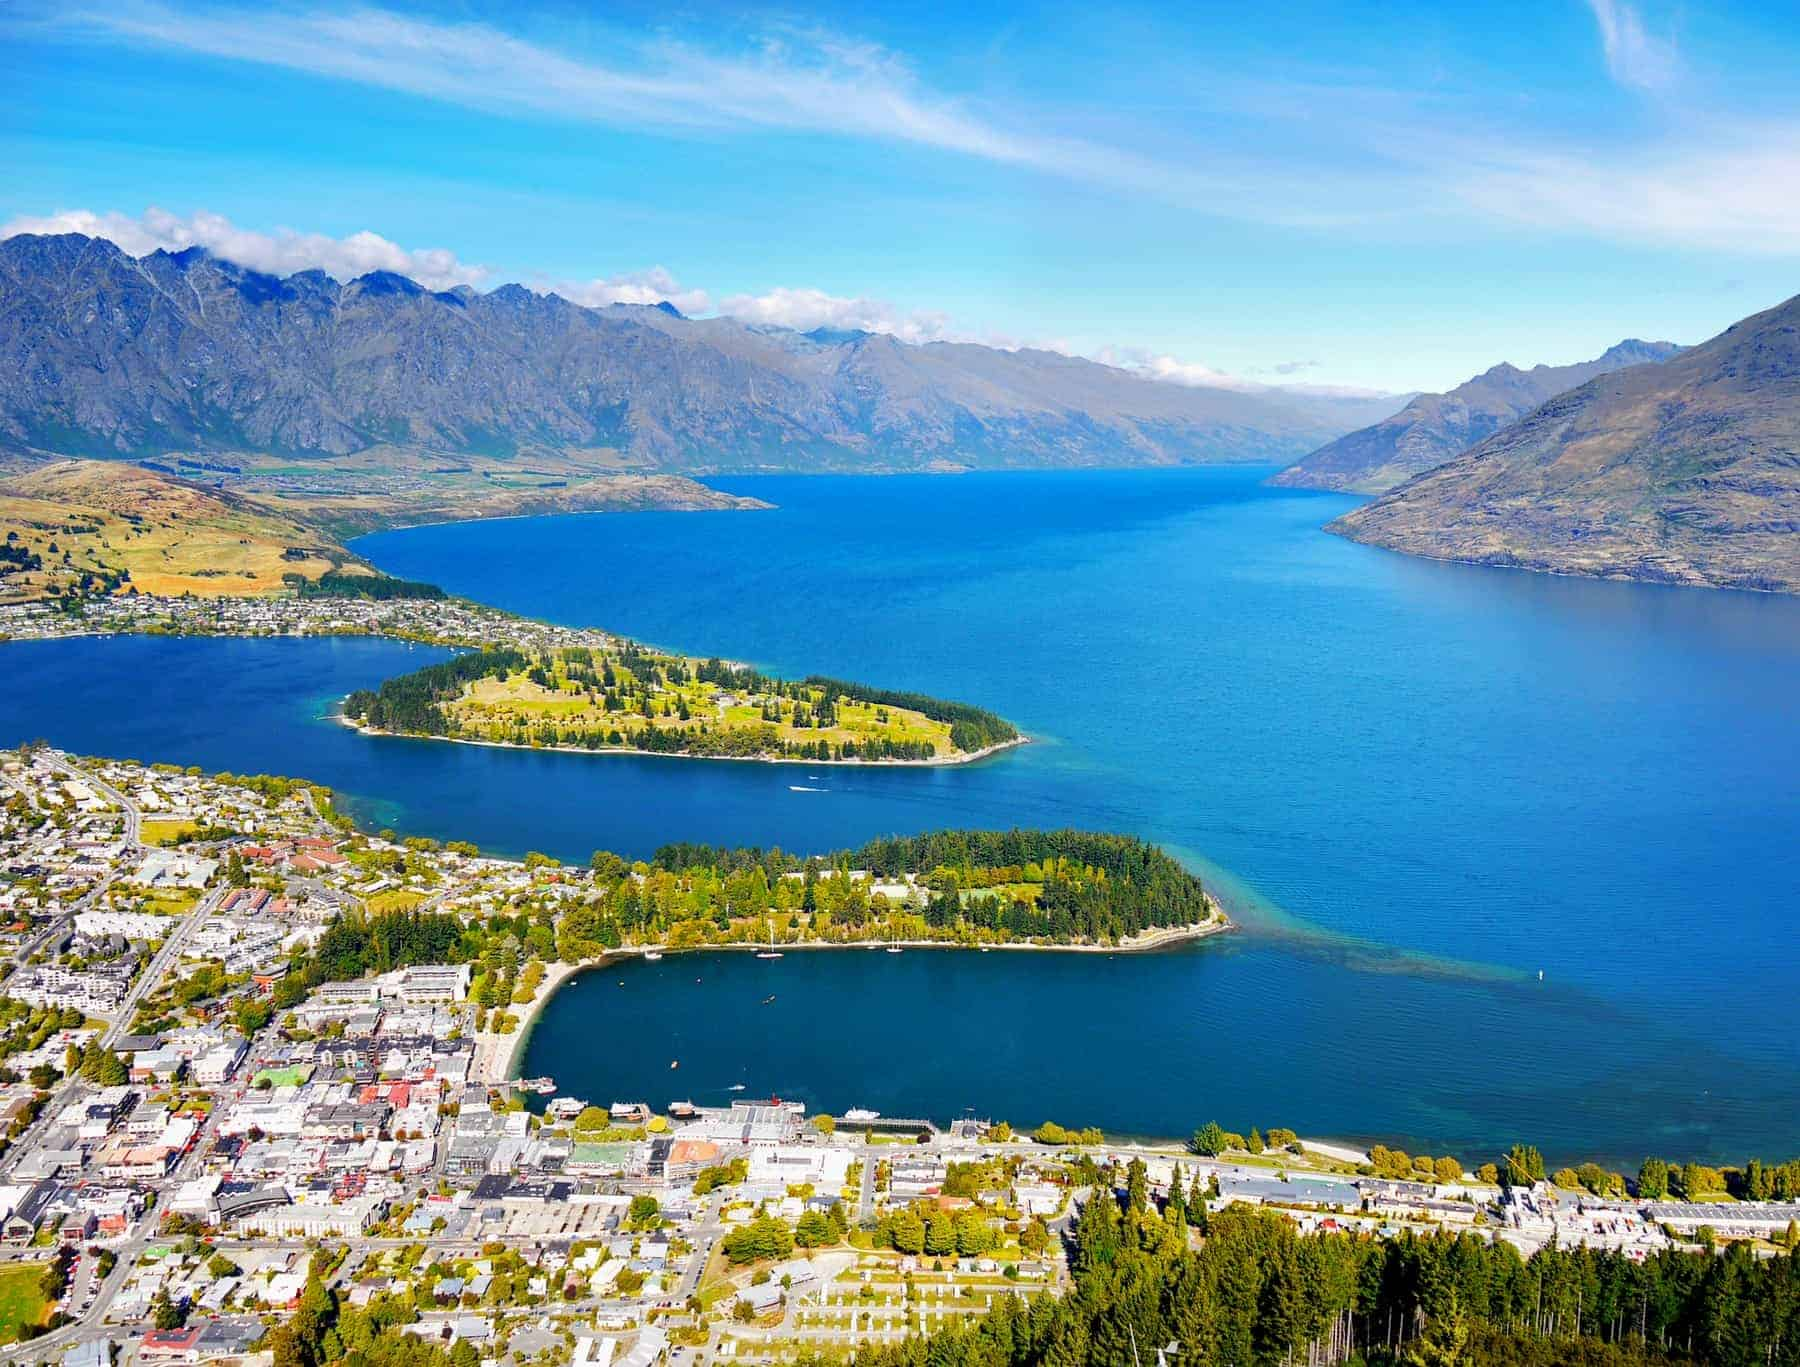 New Zealand - South Island - Queenstown. Beautiful mountains landscape scenery with blue lake. Pacific Islands, Oceania